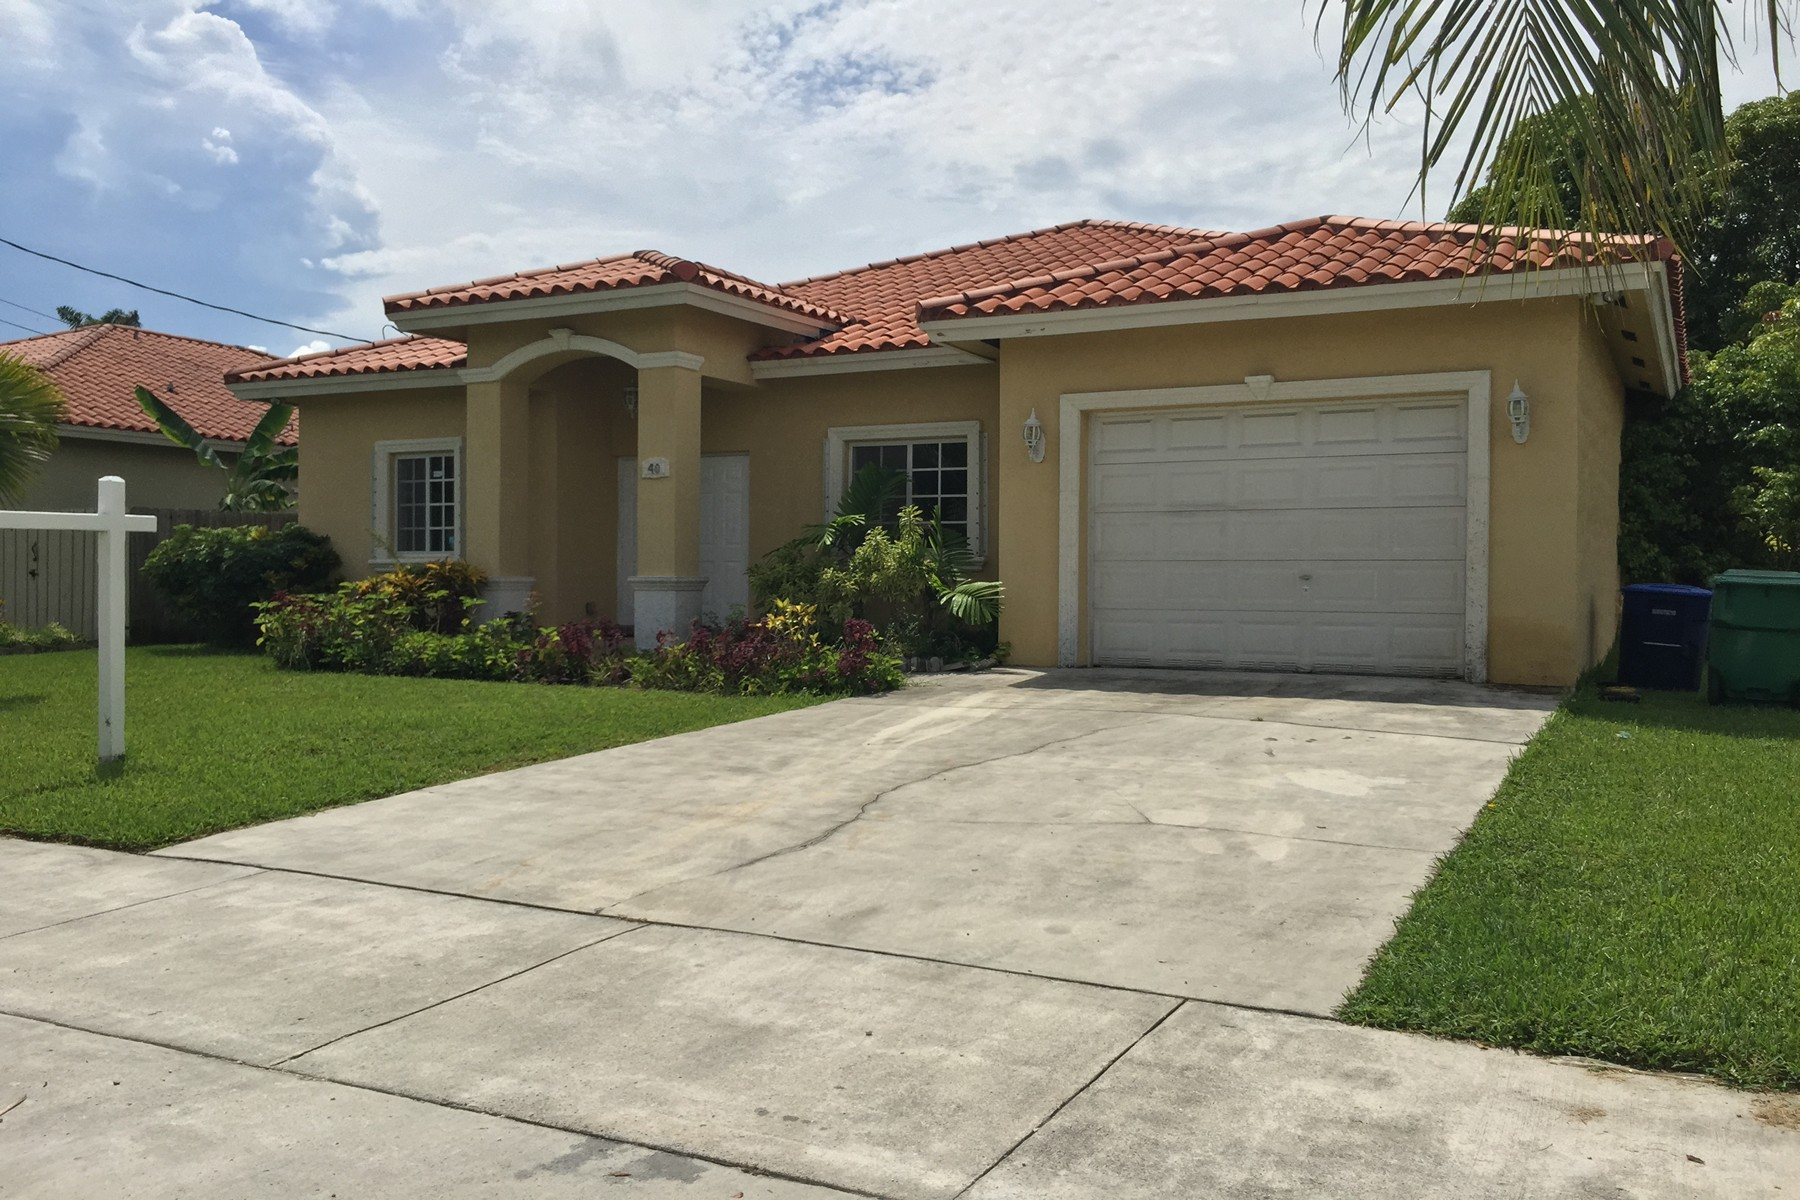 Single Family Home for Sale at 40 NW 161 ST Miami, Florida 33169 United States